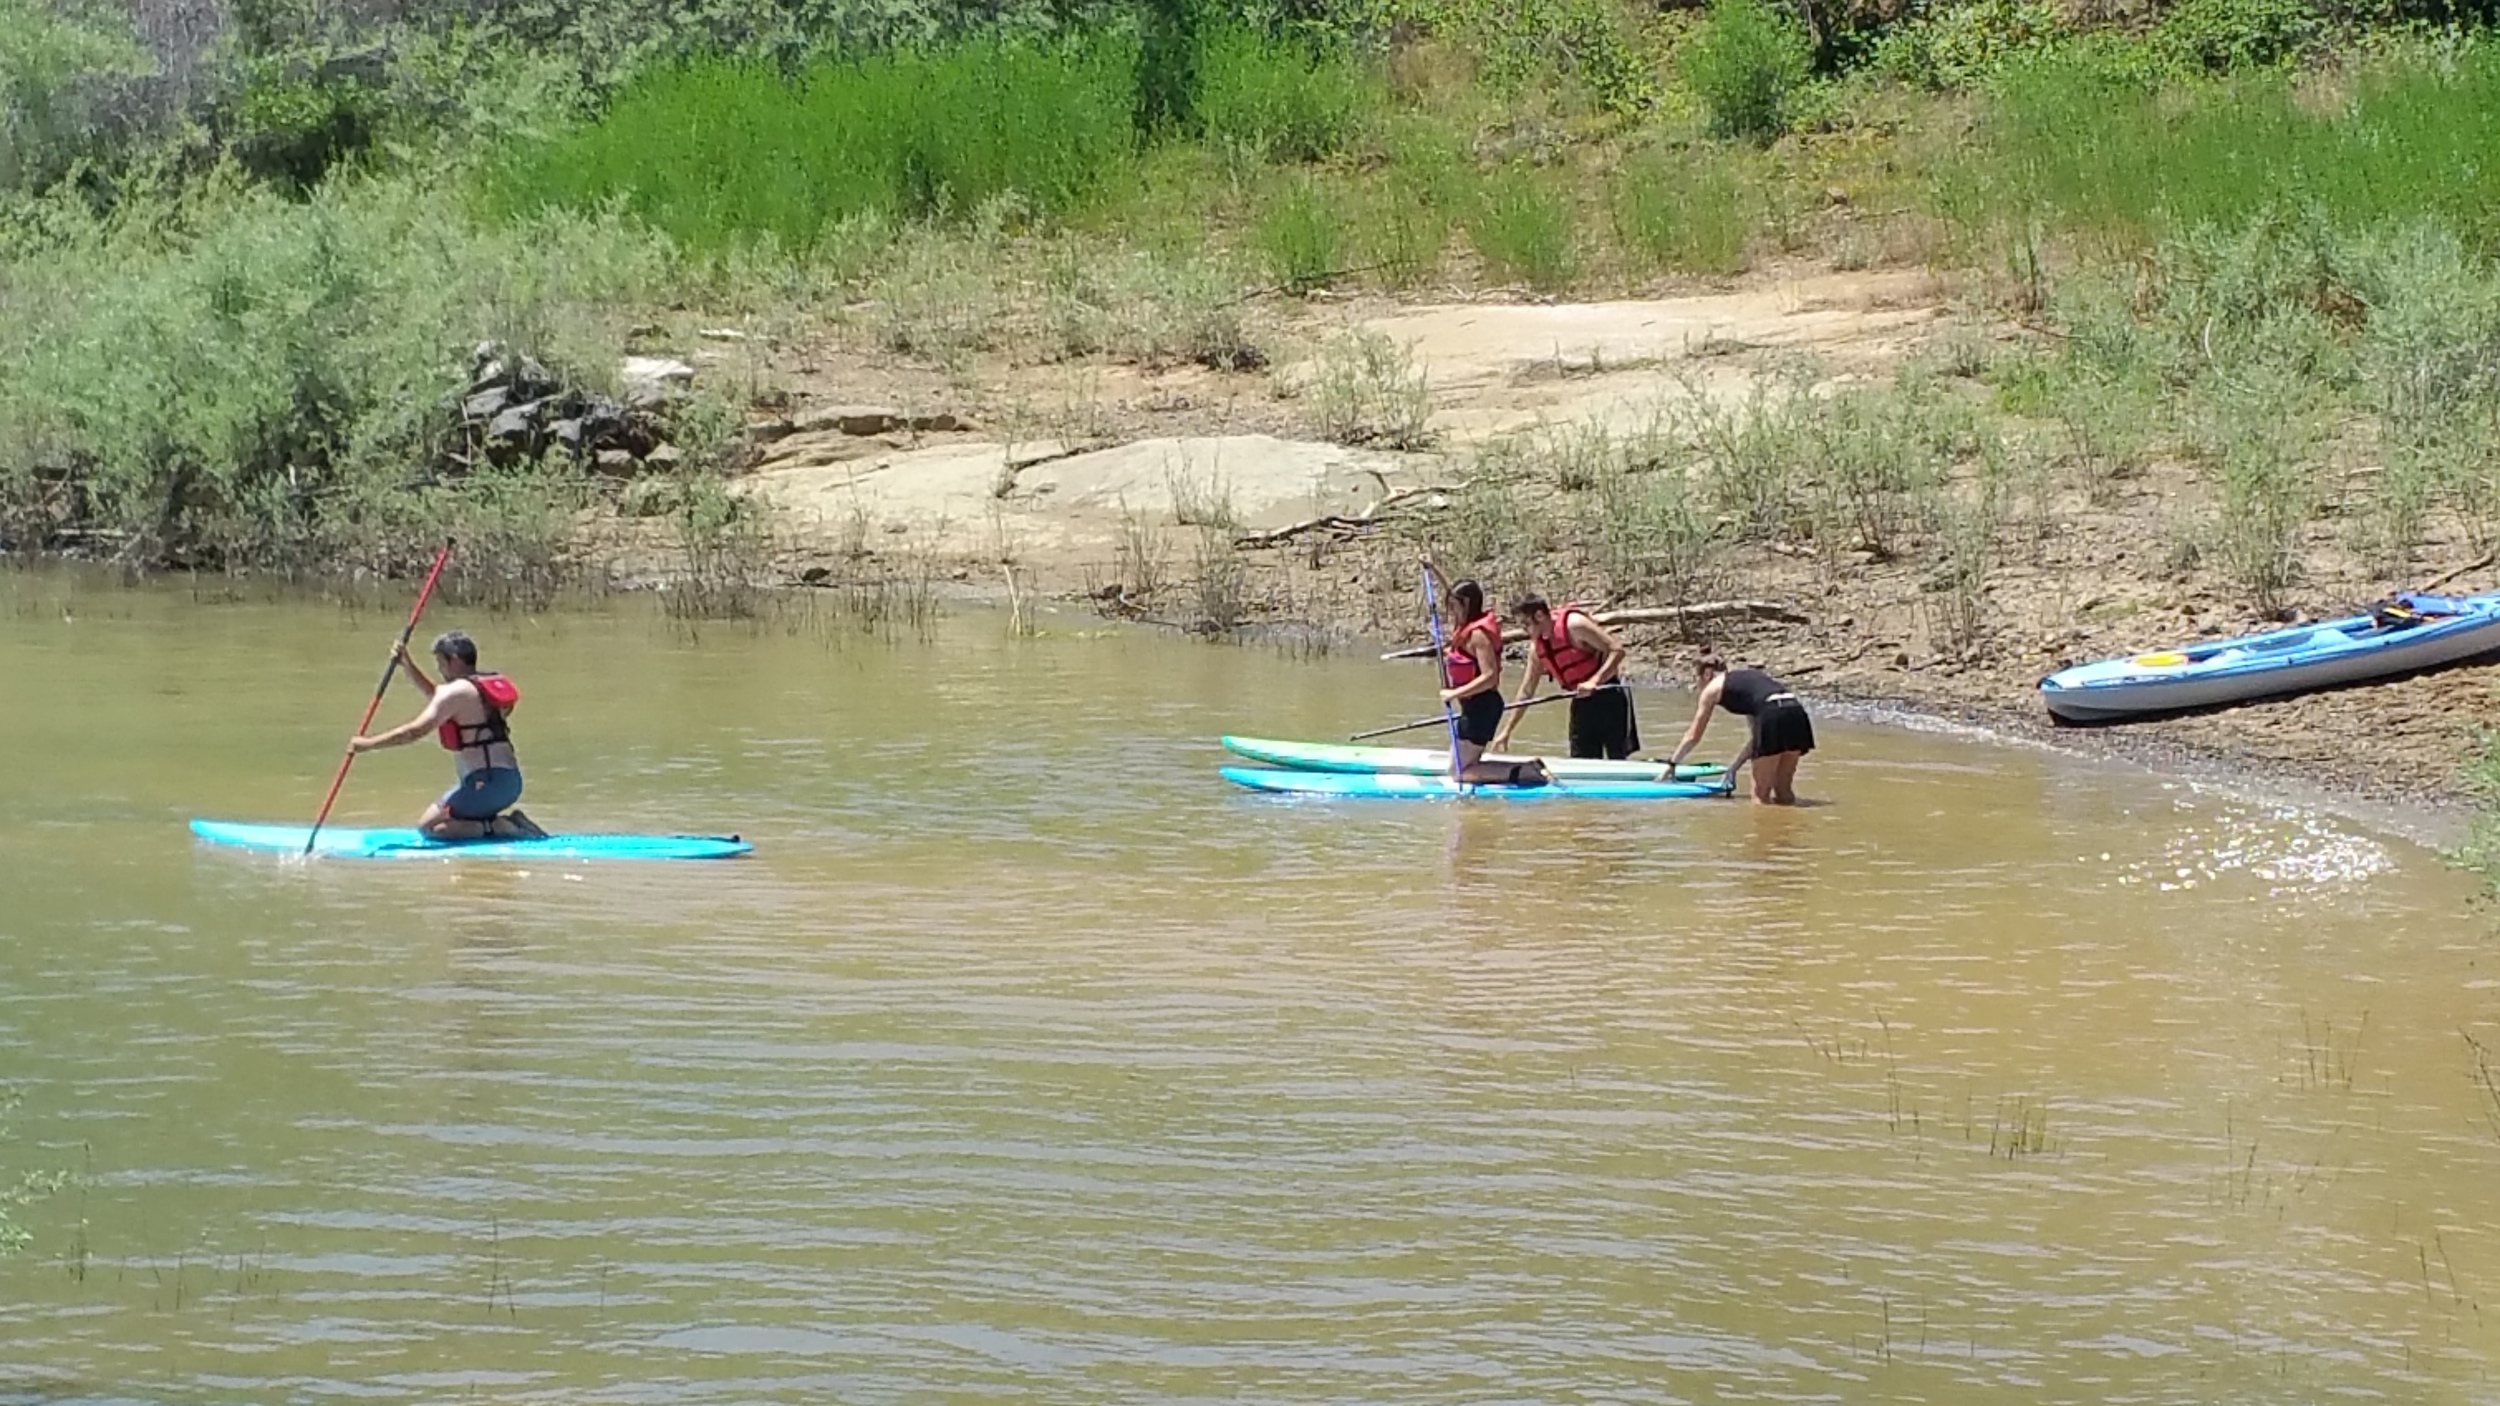 My wife, my brother in law, and me putting the boards in the water.